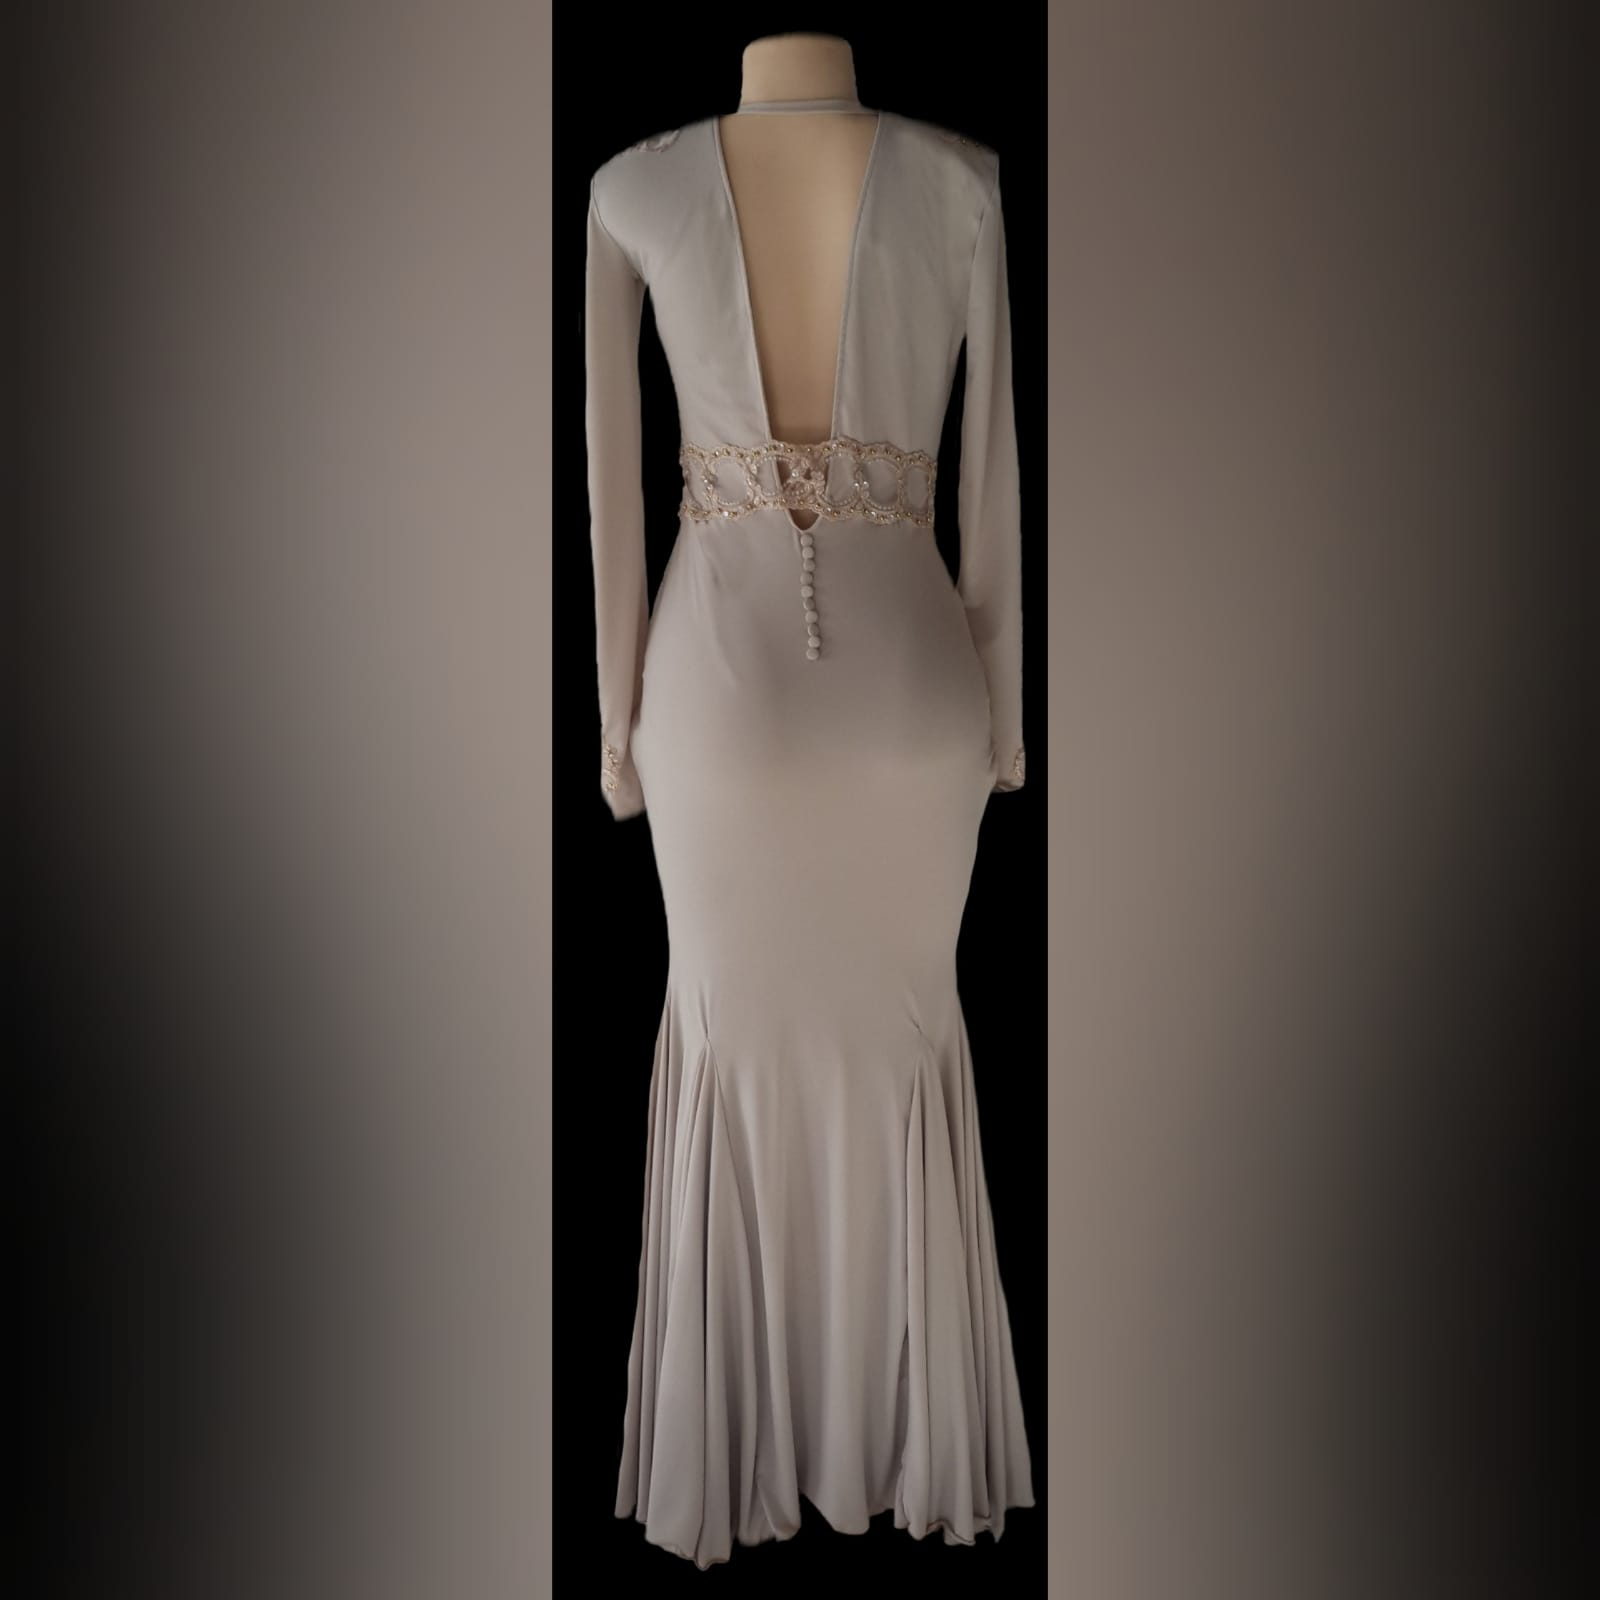 Plunging neckline beige prom dance dress 6 beige soft mermaid, prom dance dress with a plunging neckline and a v back. With long sleeves, detailed with gold applique, with gold beads, creating a belt. Applique on the shoulders and sleeve cuffs.